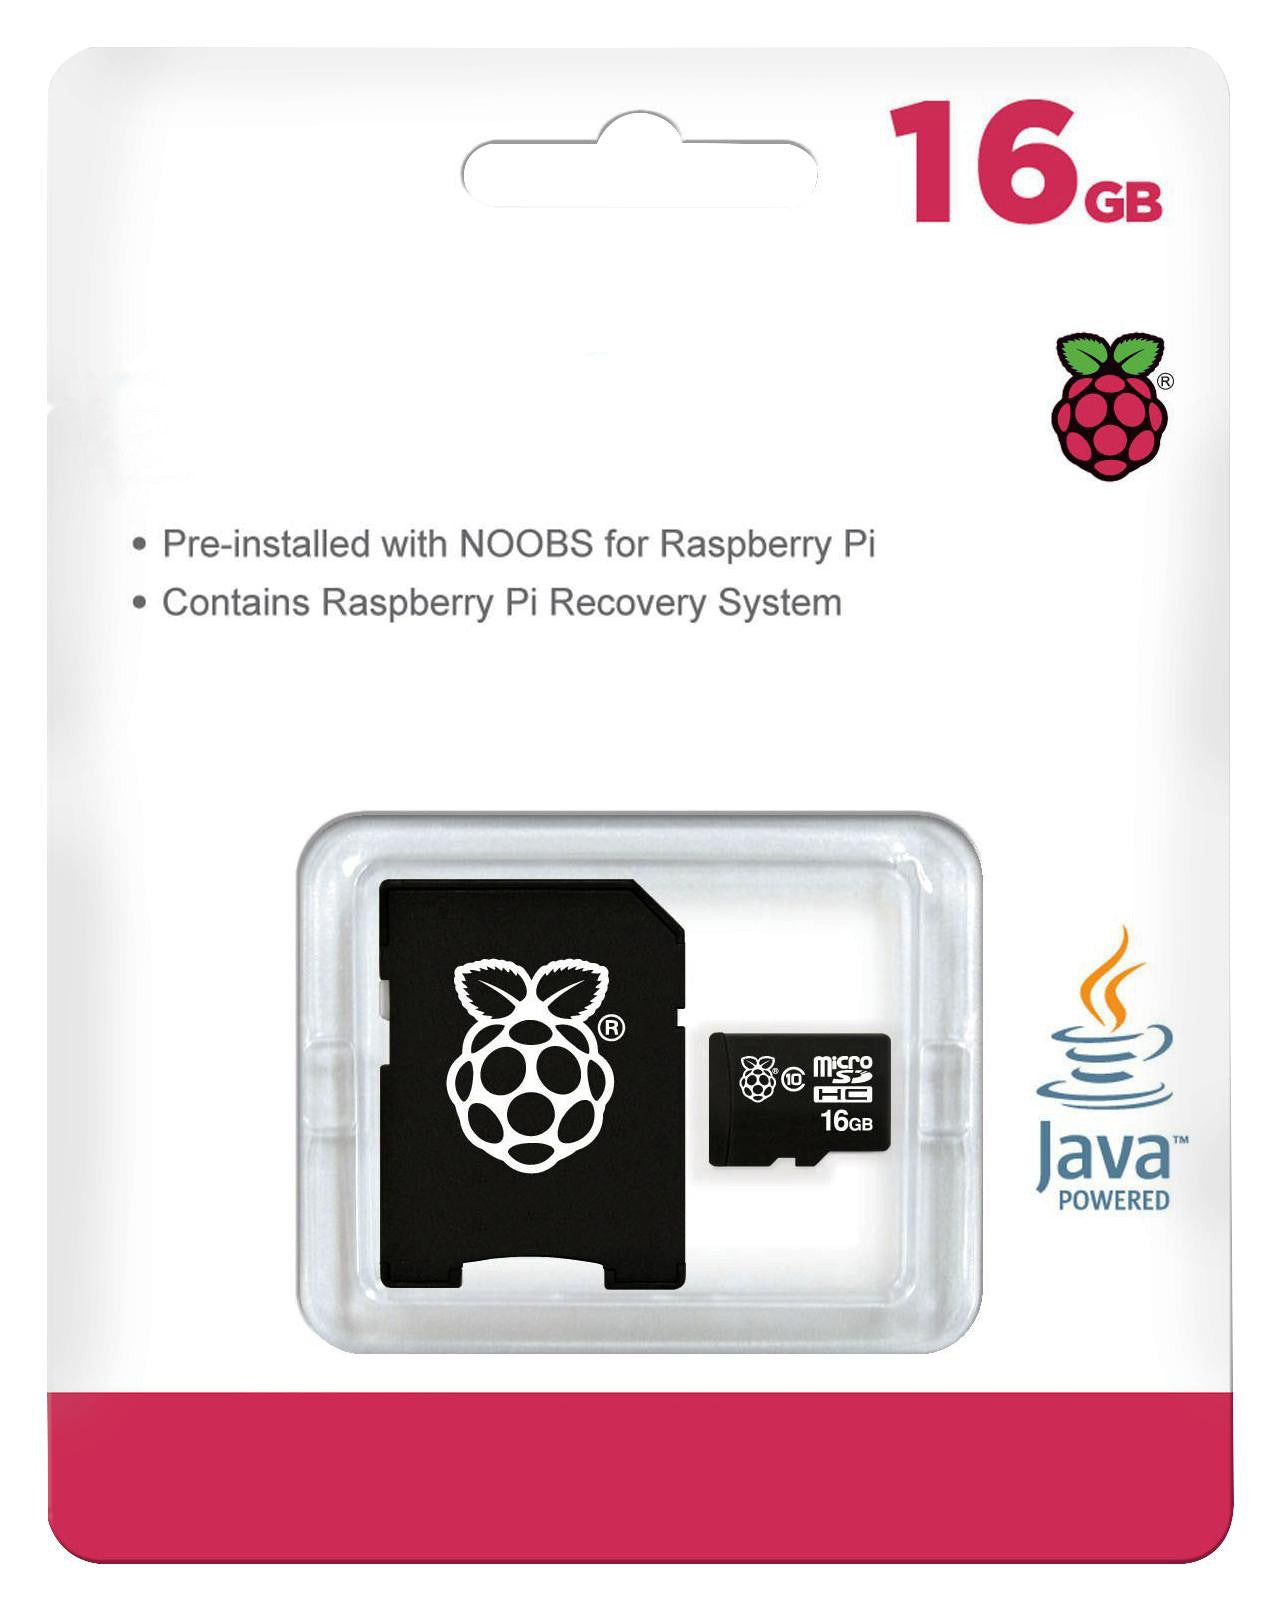 16GB Micro Sd Pre-installed NOOBS for Raspberry Pi Software